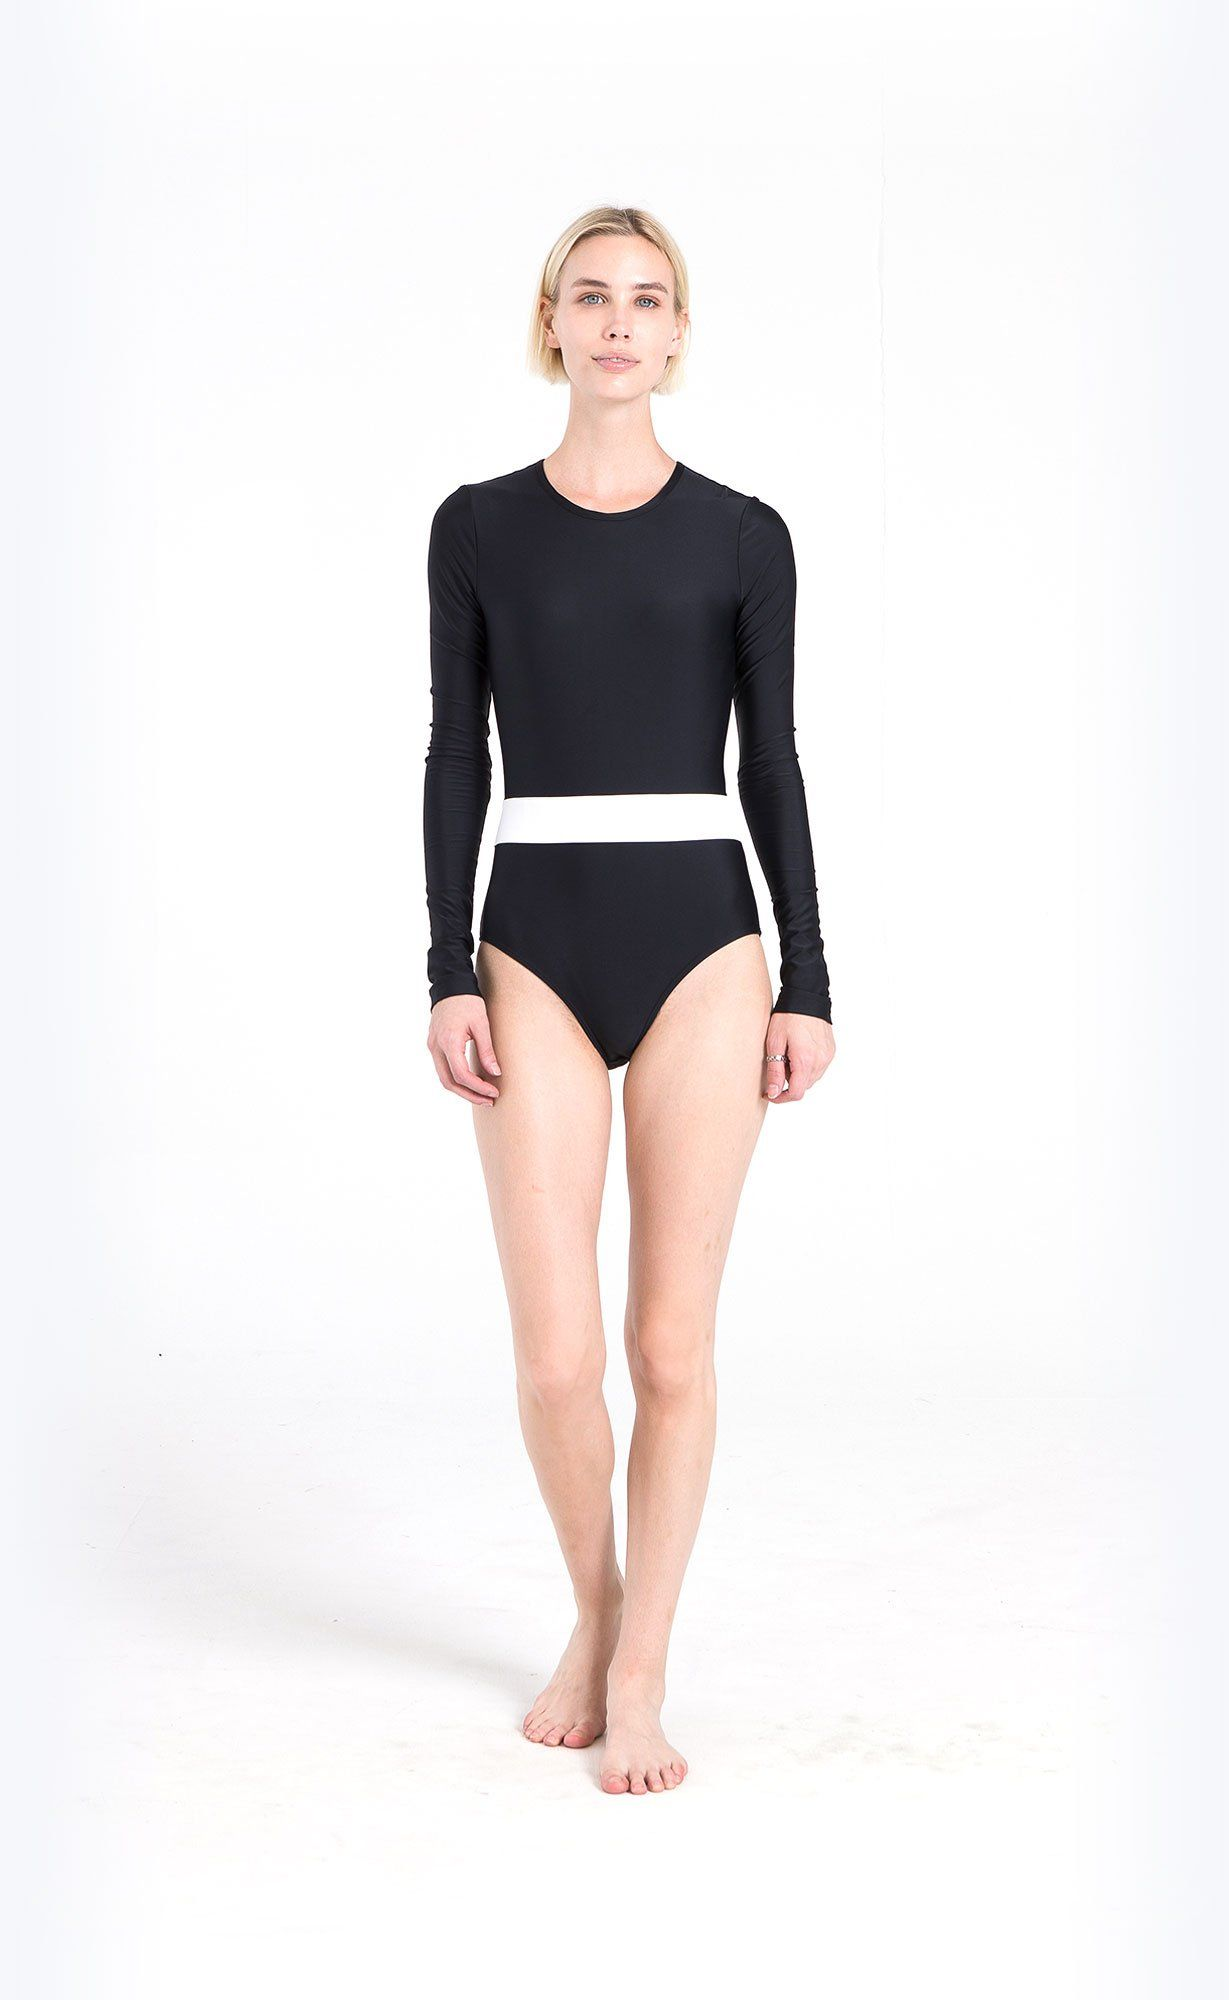 Long-Sleeved Horizontal Stripe Swimsuit - Black/White